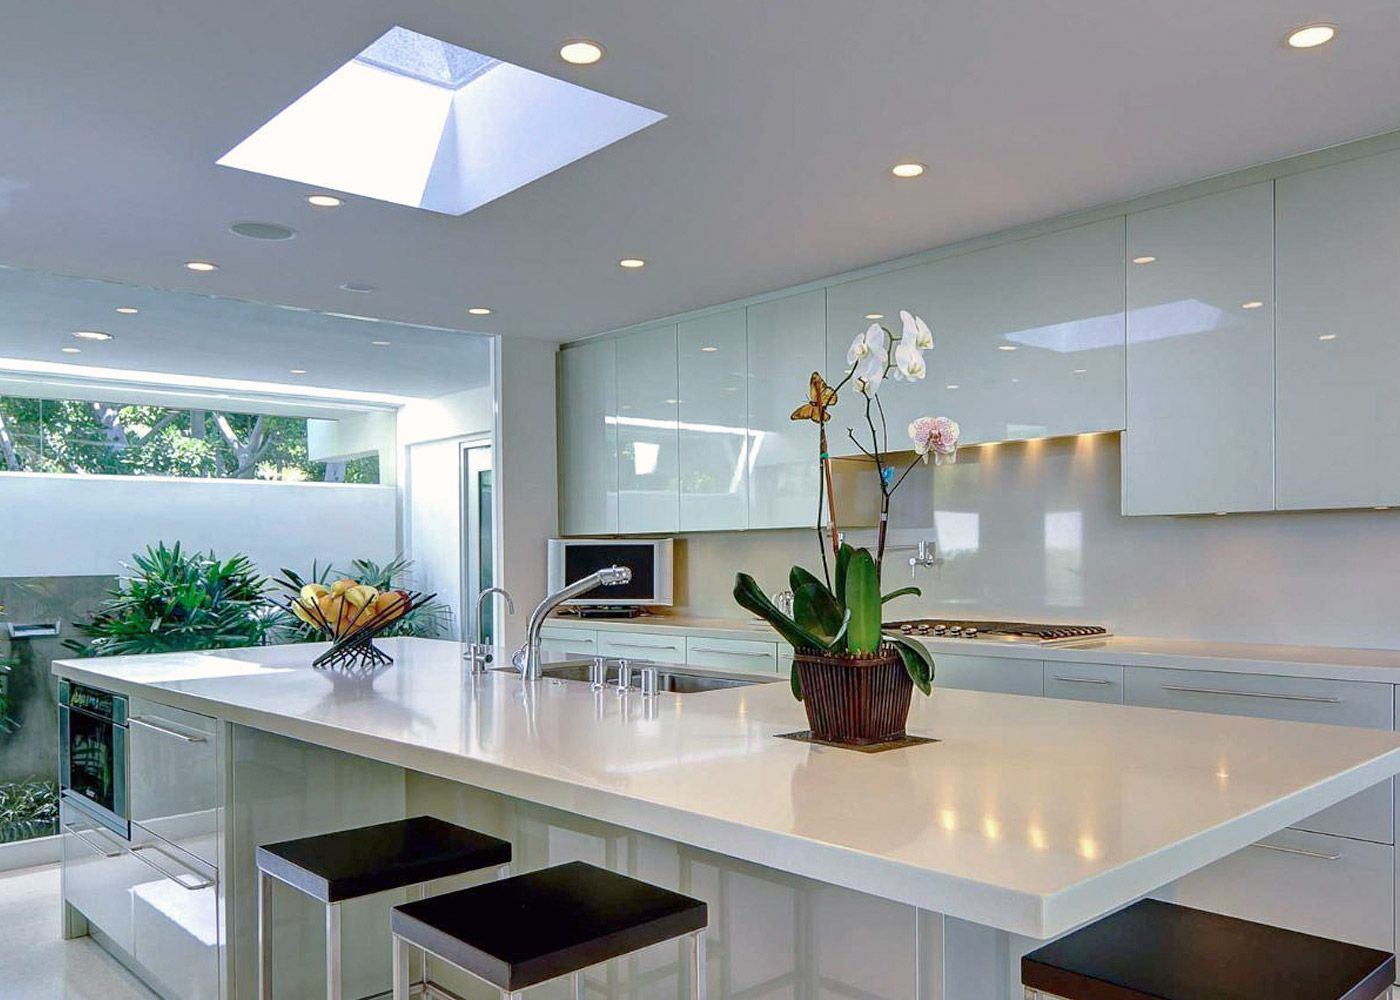 Nice Pacific Kitchen & Home Model - Kitchen Cabinets | Ideas ...